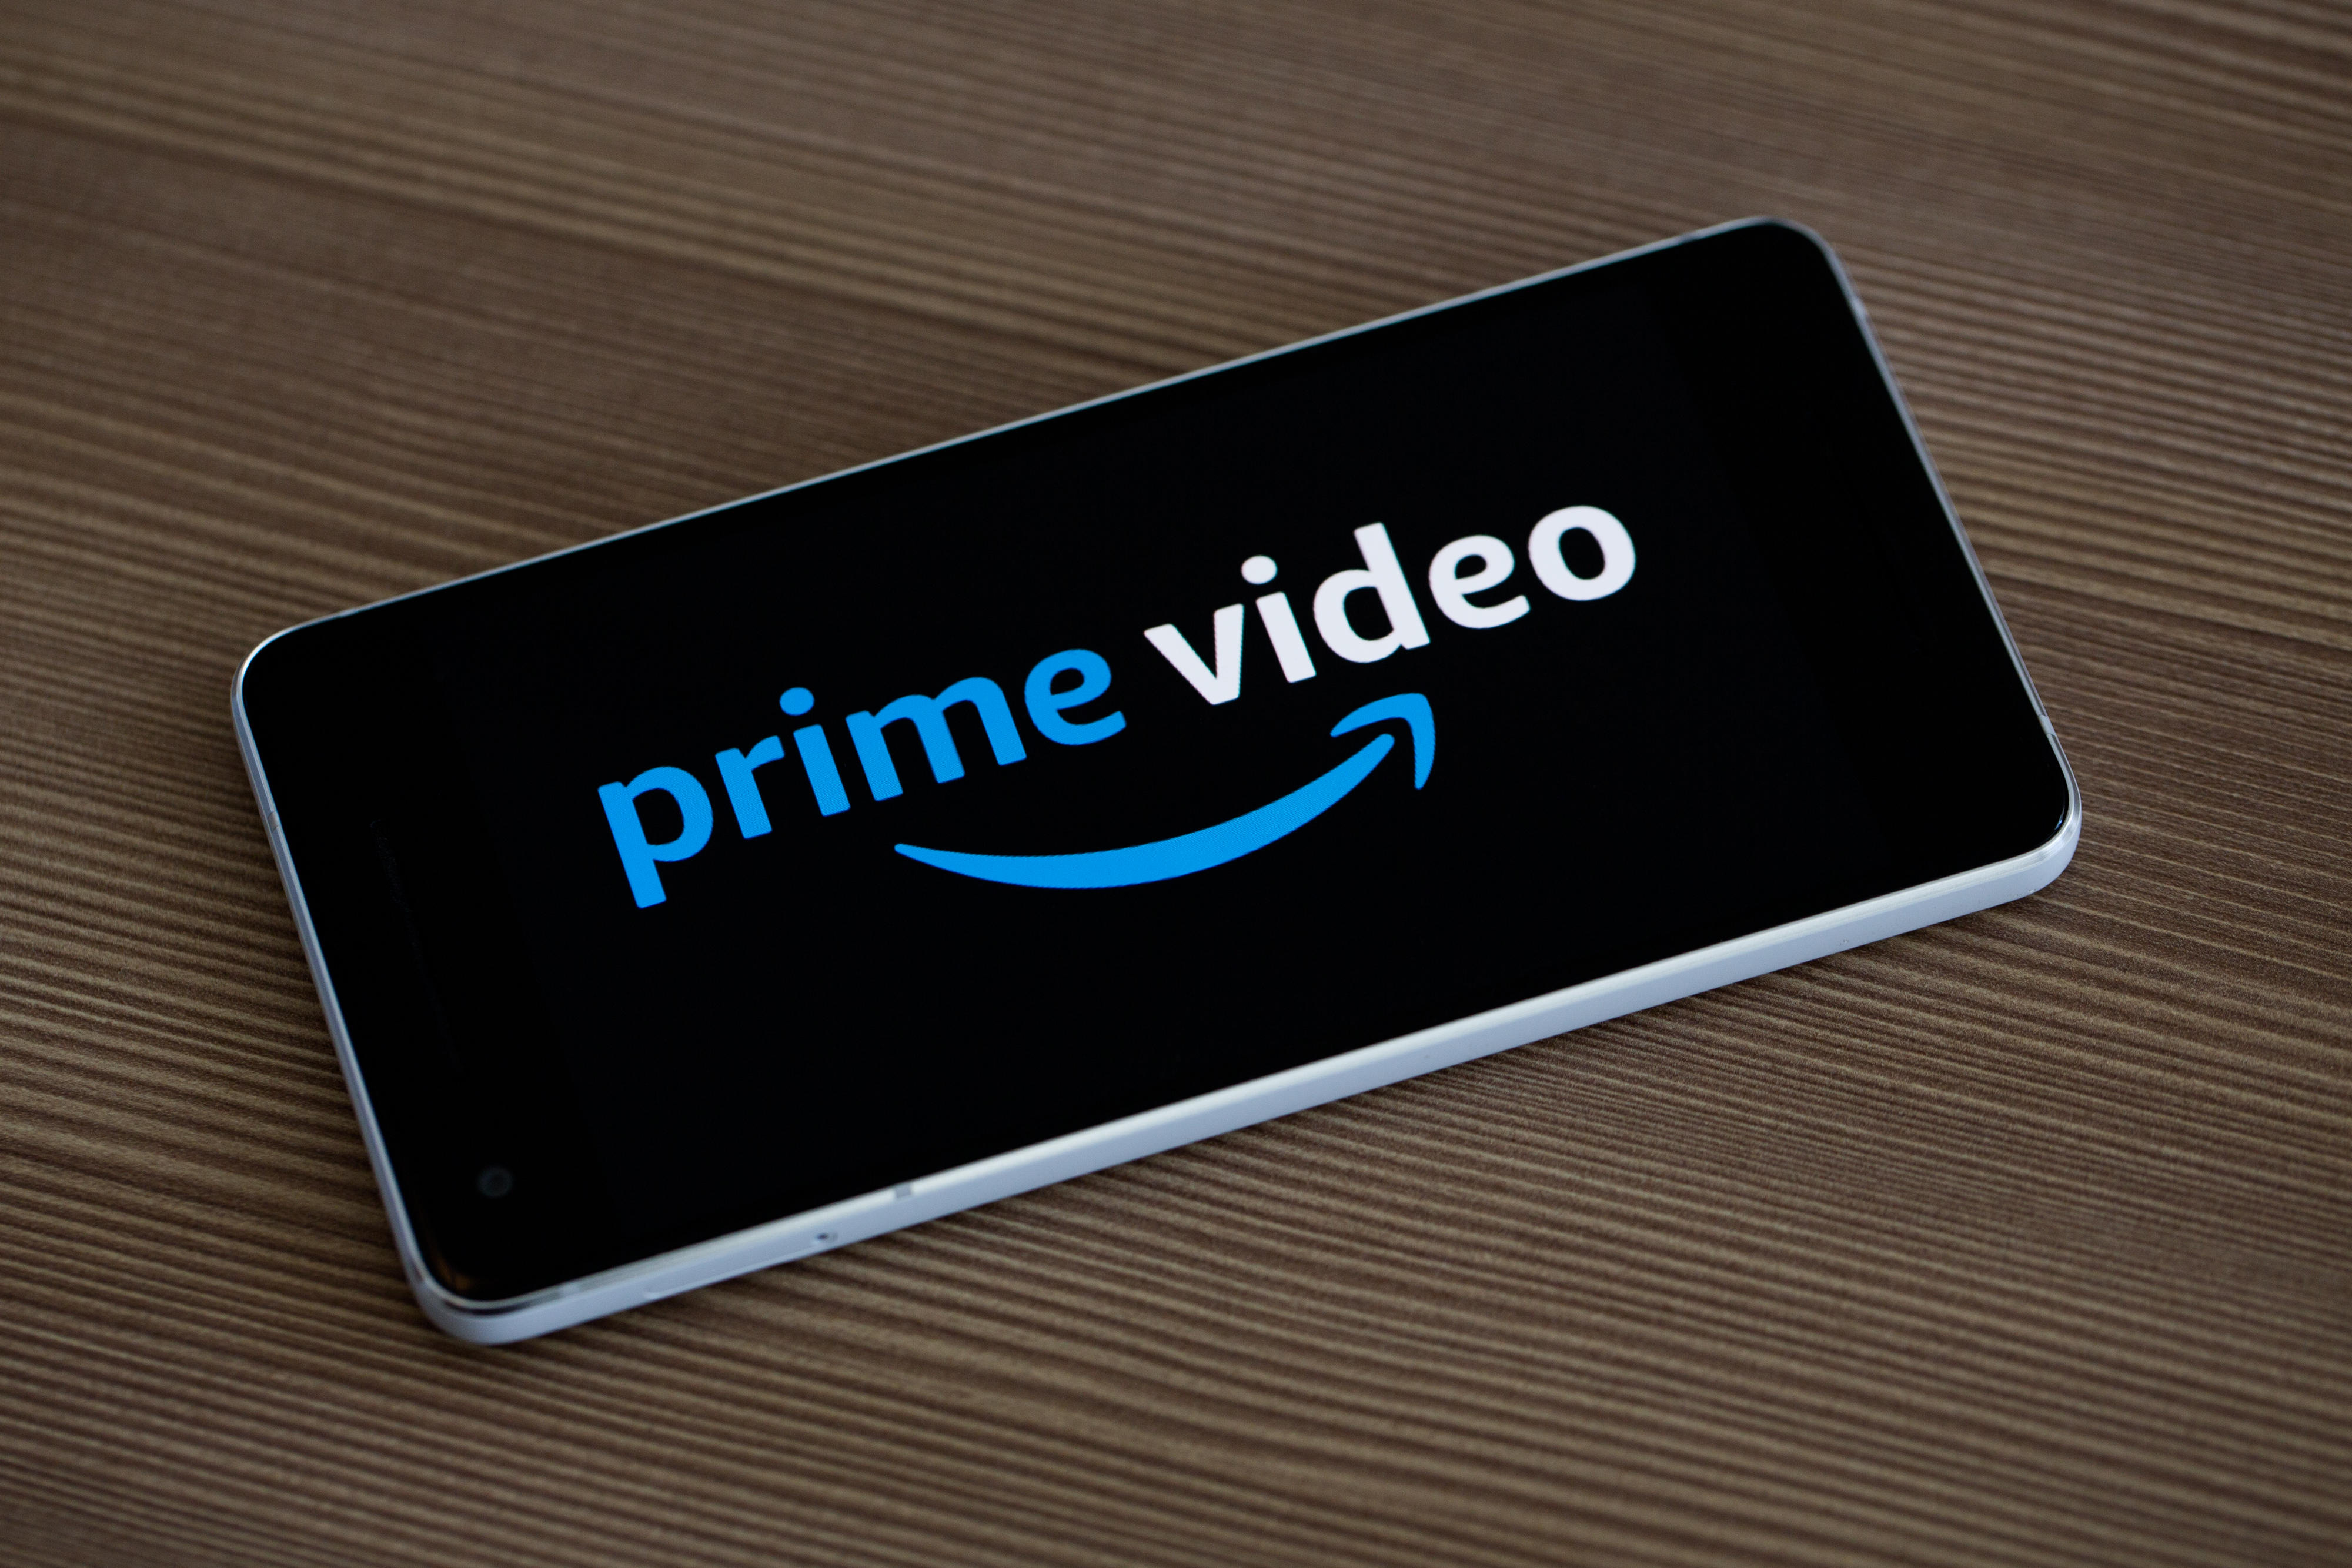 amazon-prime-video-logo-phone-2